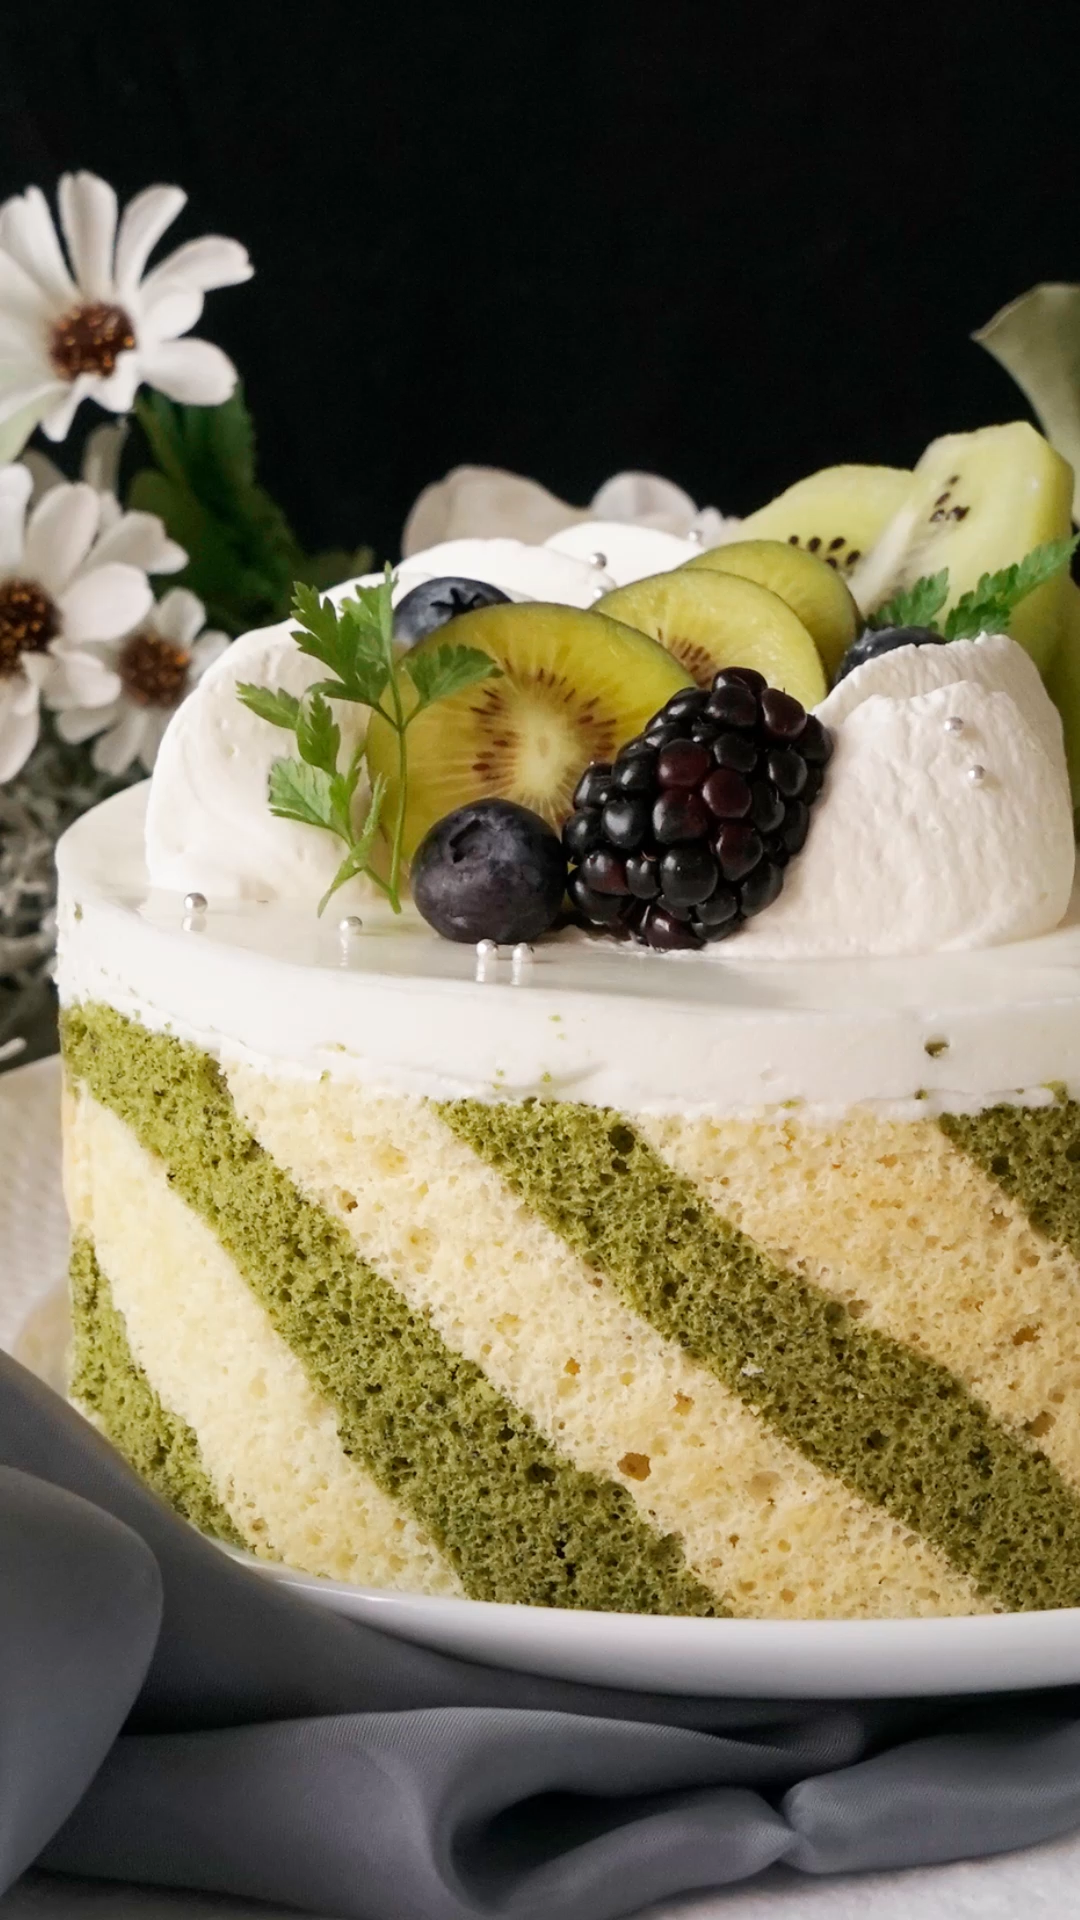 21 cake Sponge video ideas